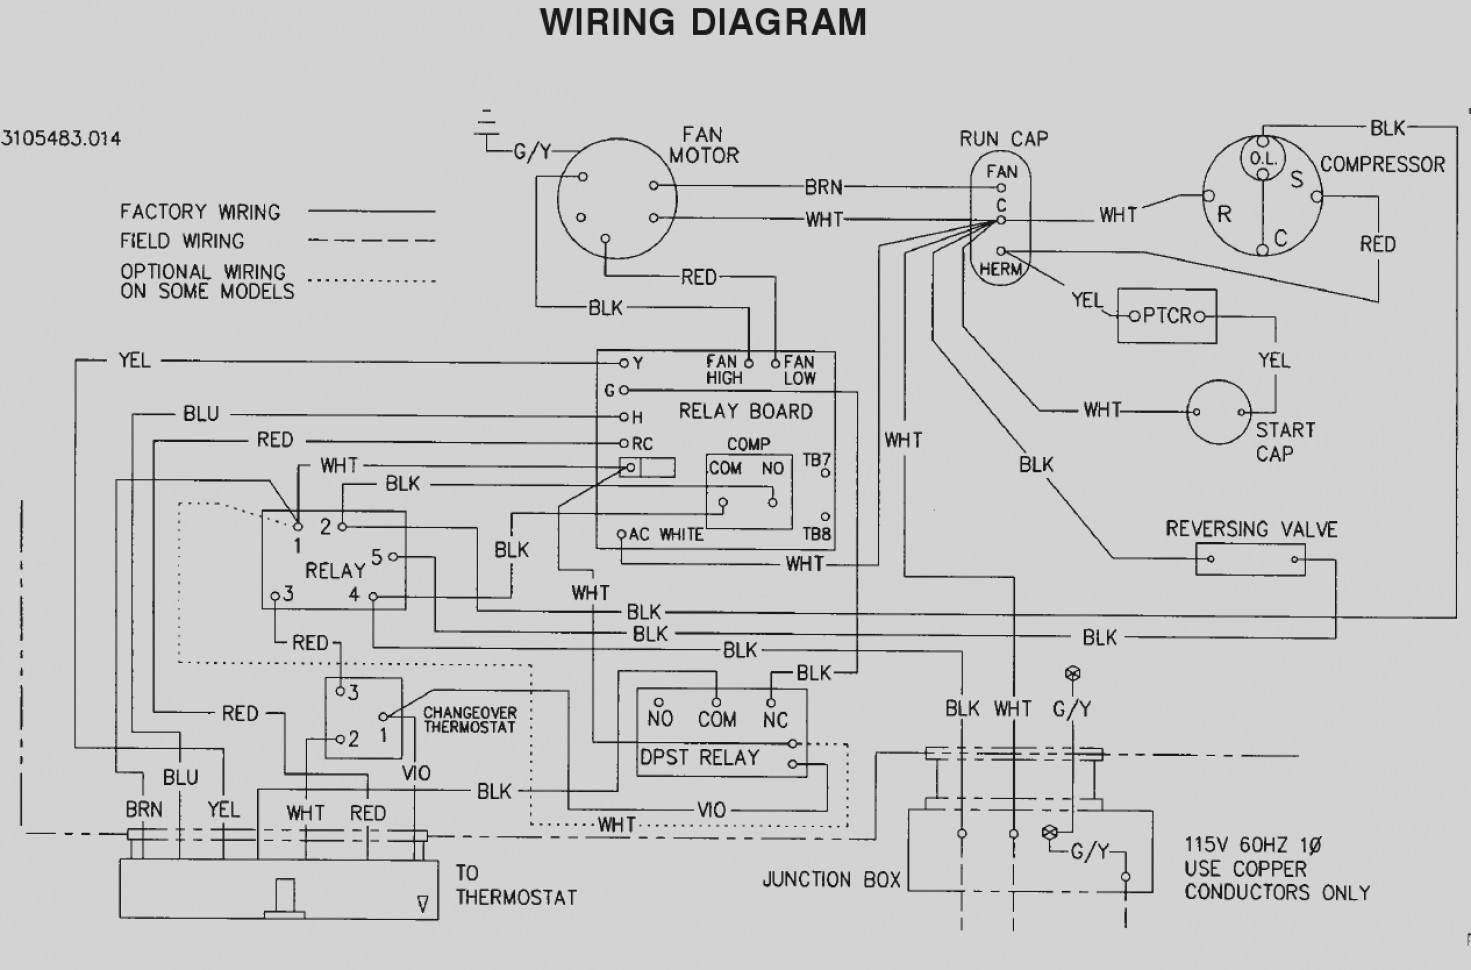 Fan Coil Thermostat Wiring Diagram View Diagram - WIRE Center •